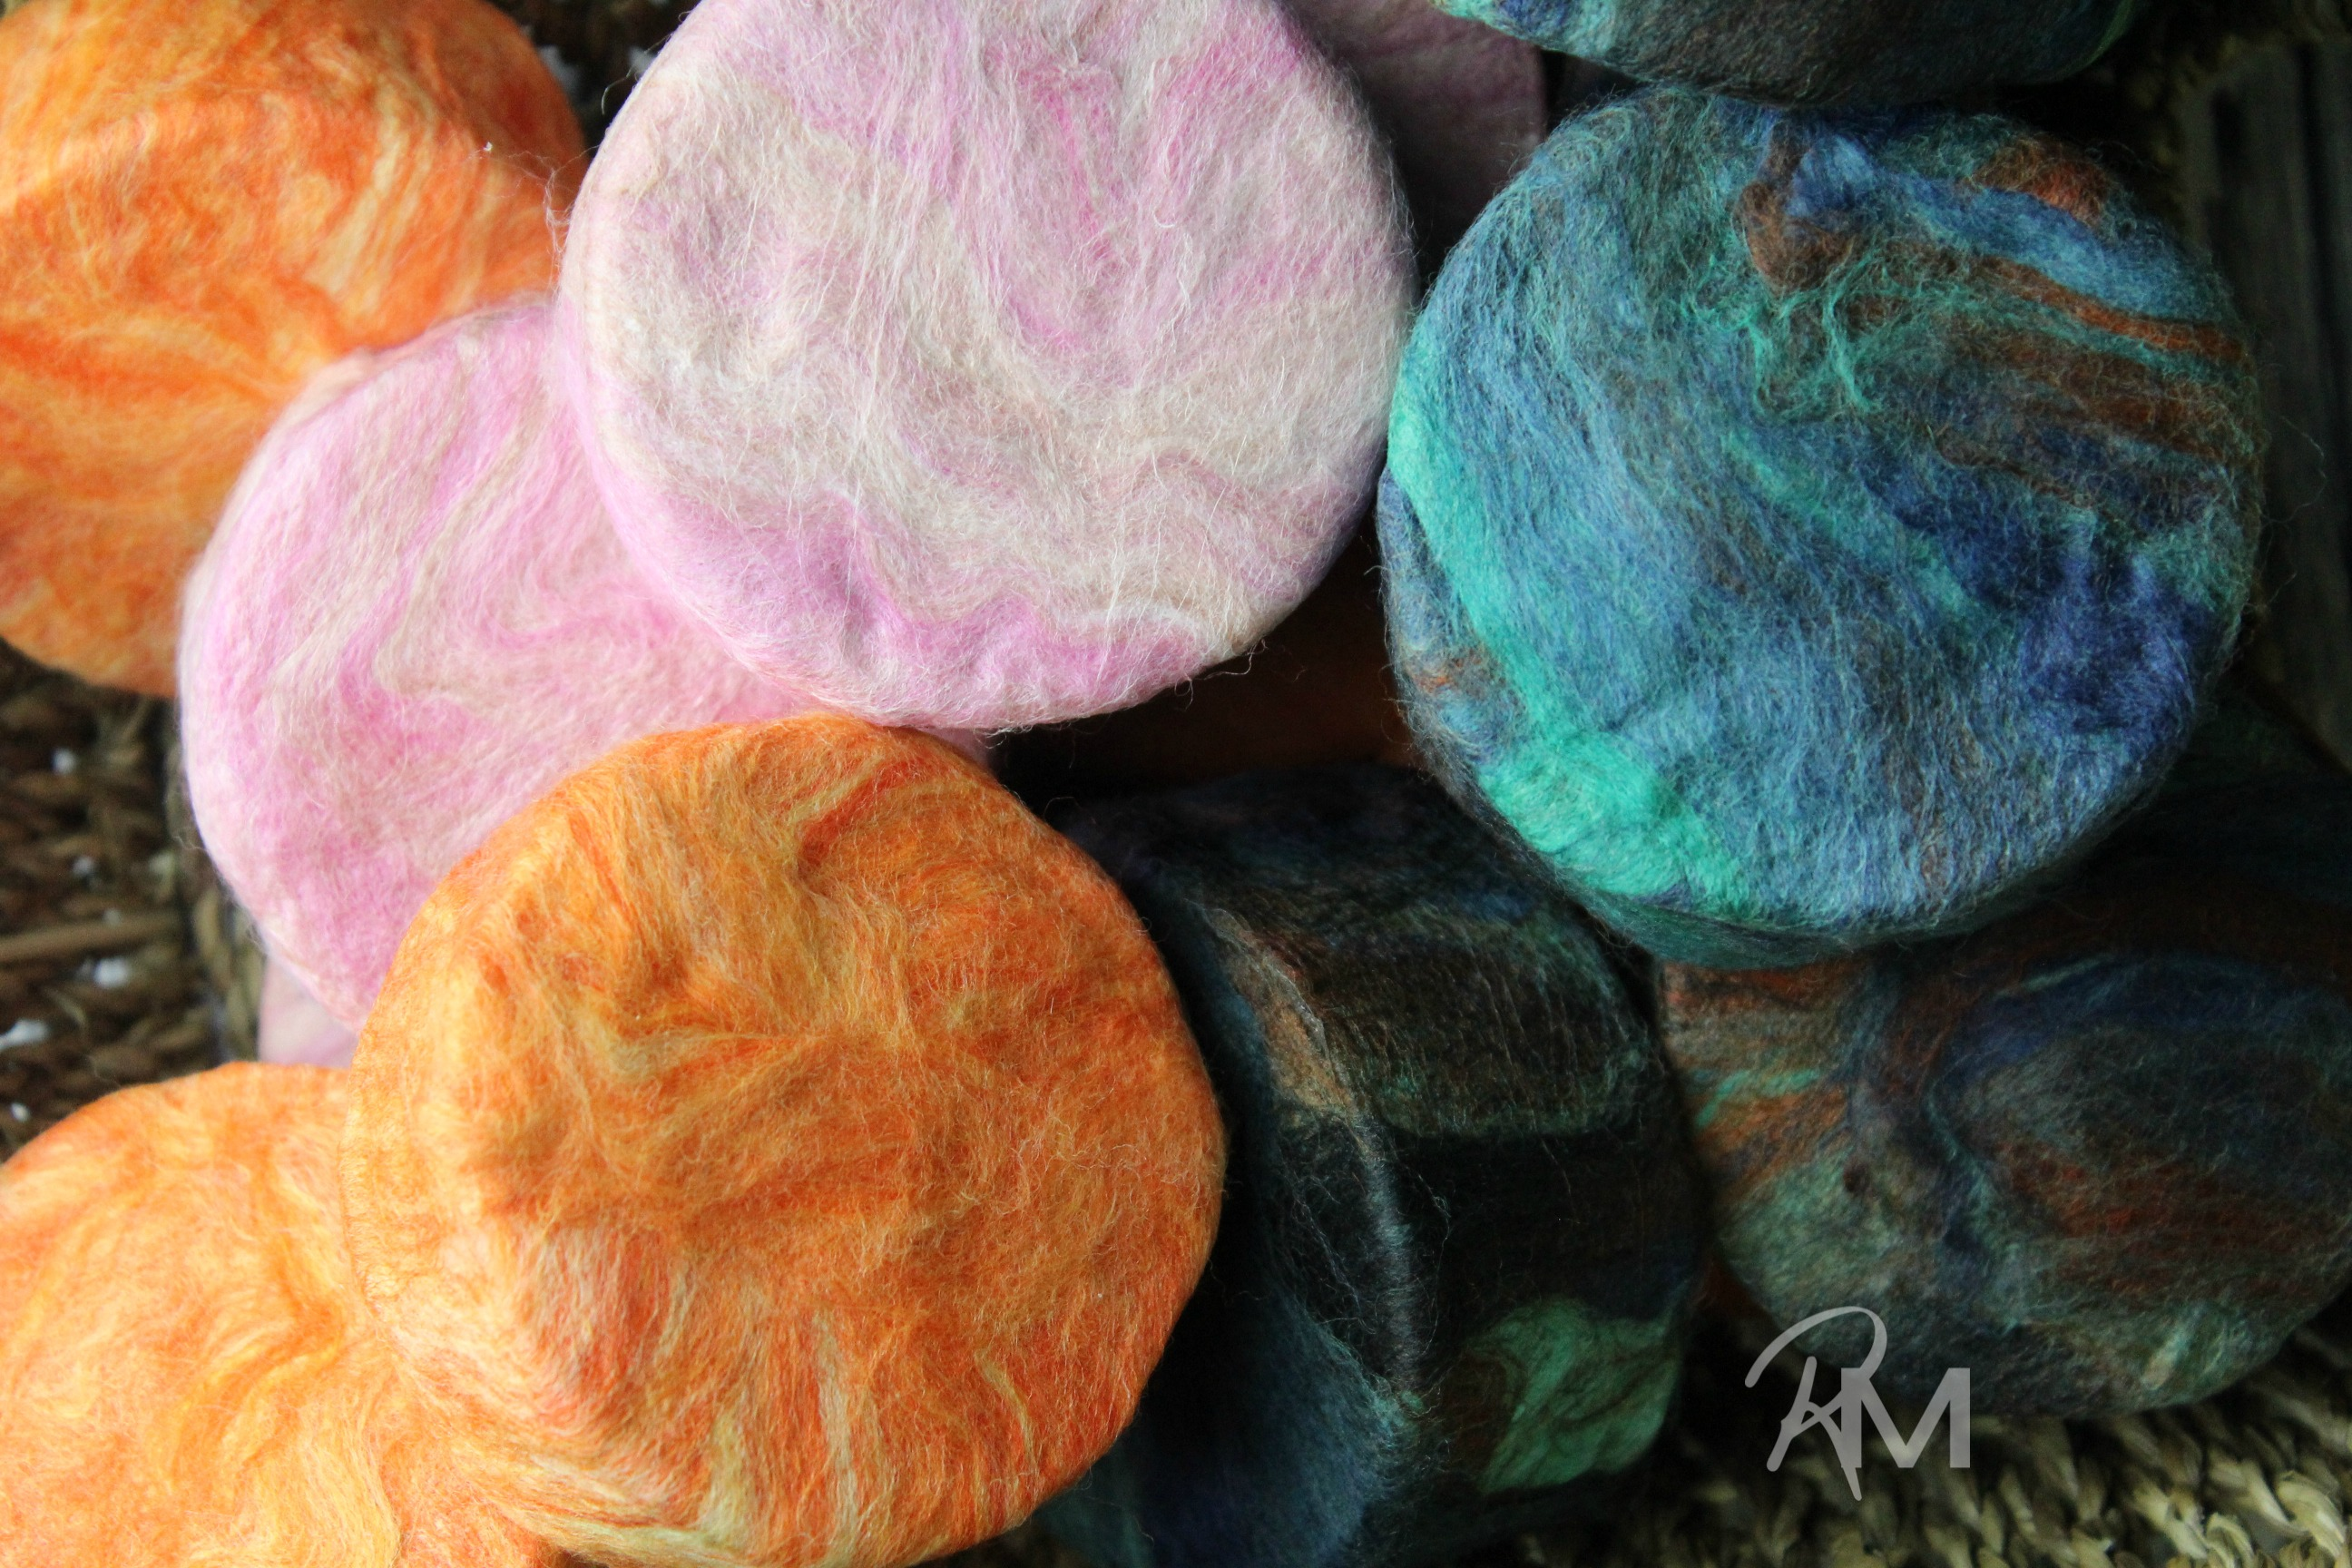 Learn how to make felted soap easily with this DIY Felted Soap tutorial. These soaps are a unique gift and are easy to make at home.